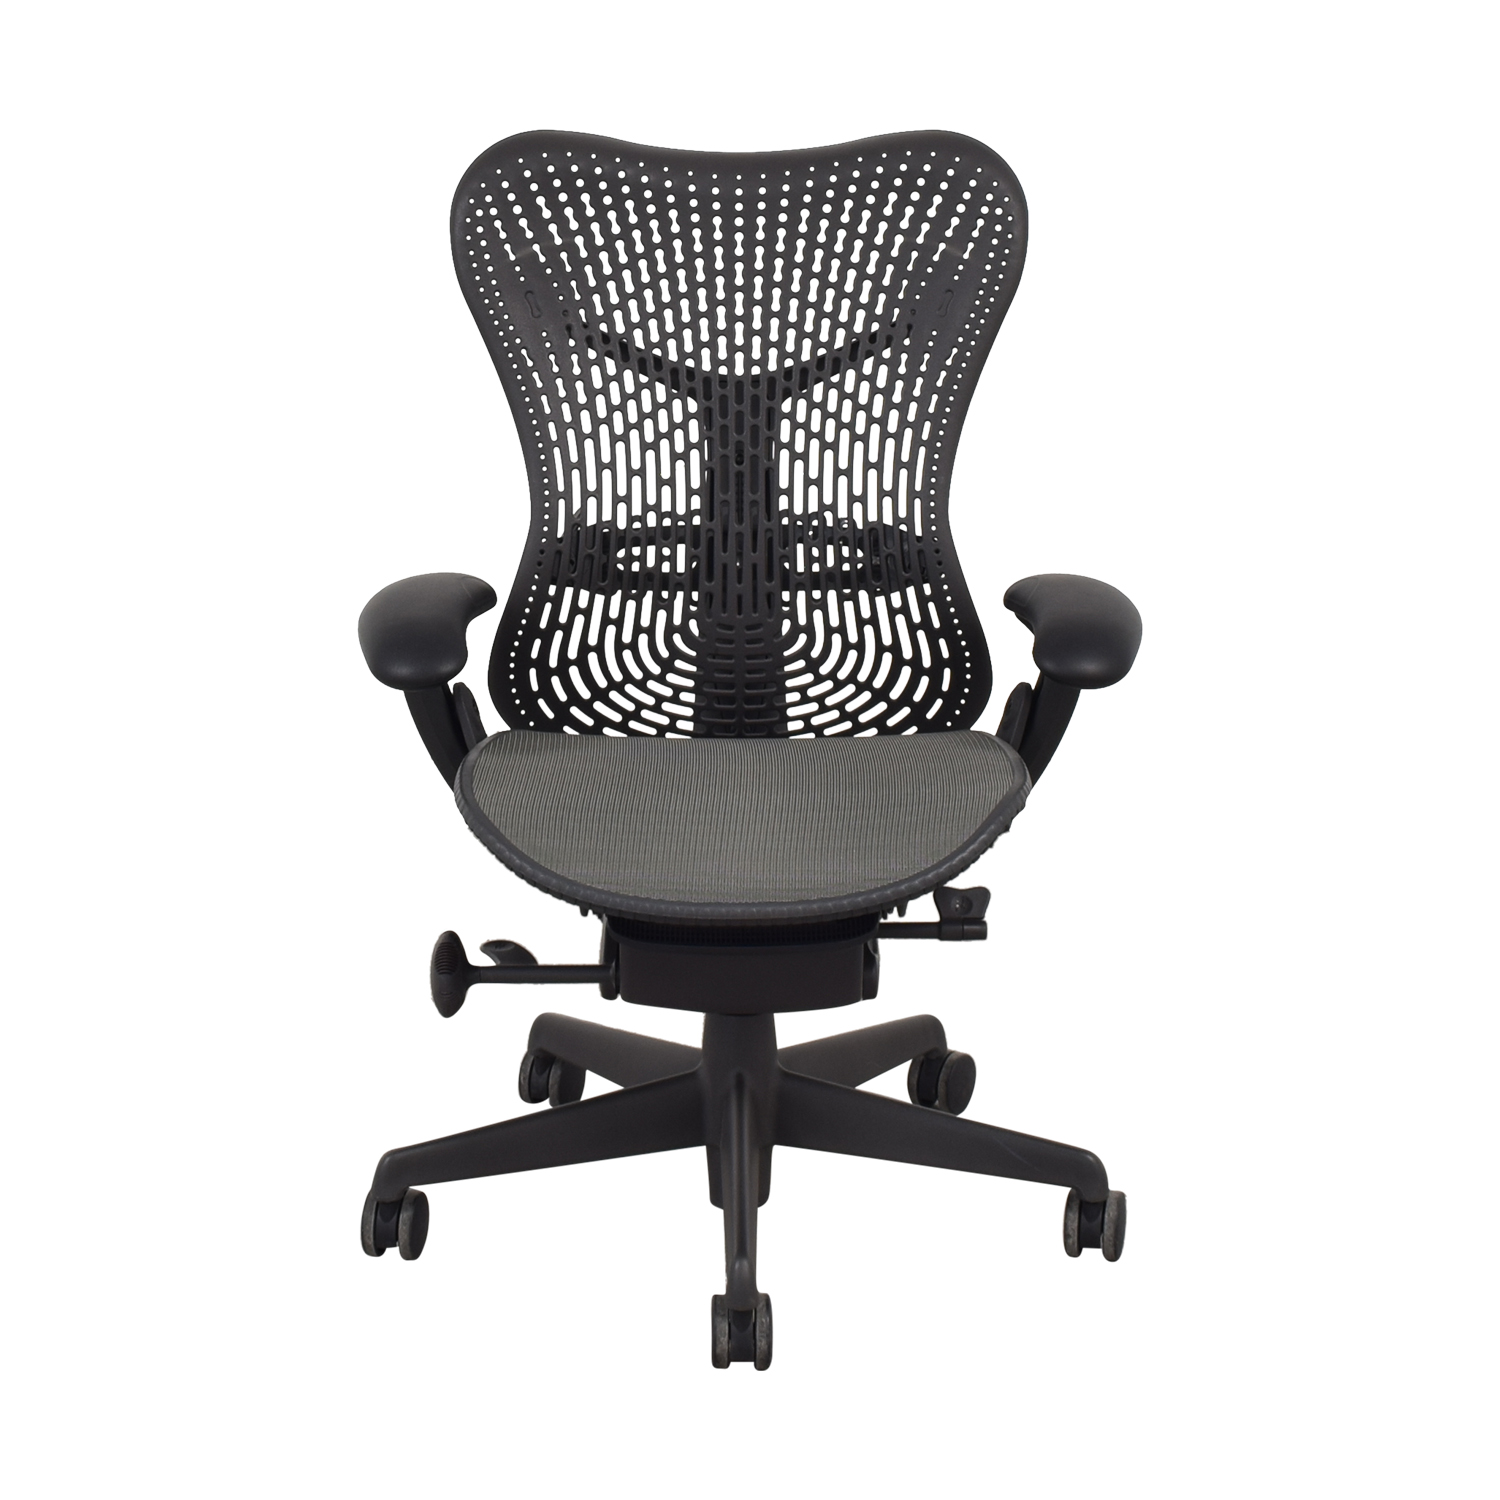 Herman Miller Herman Miller Mirra Office Chair dark grey